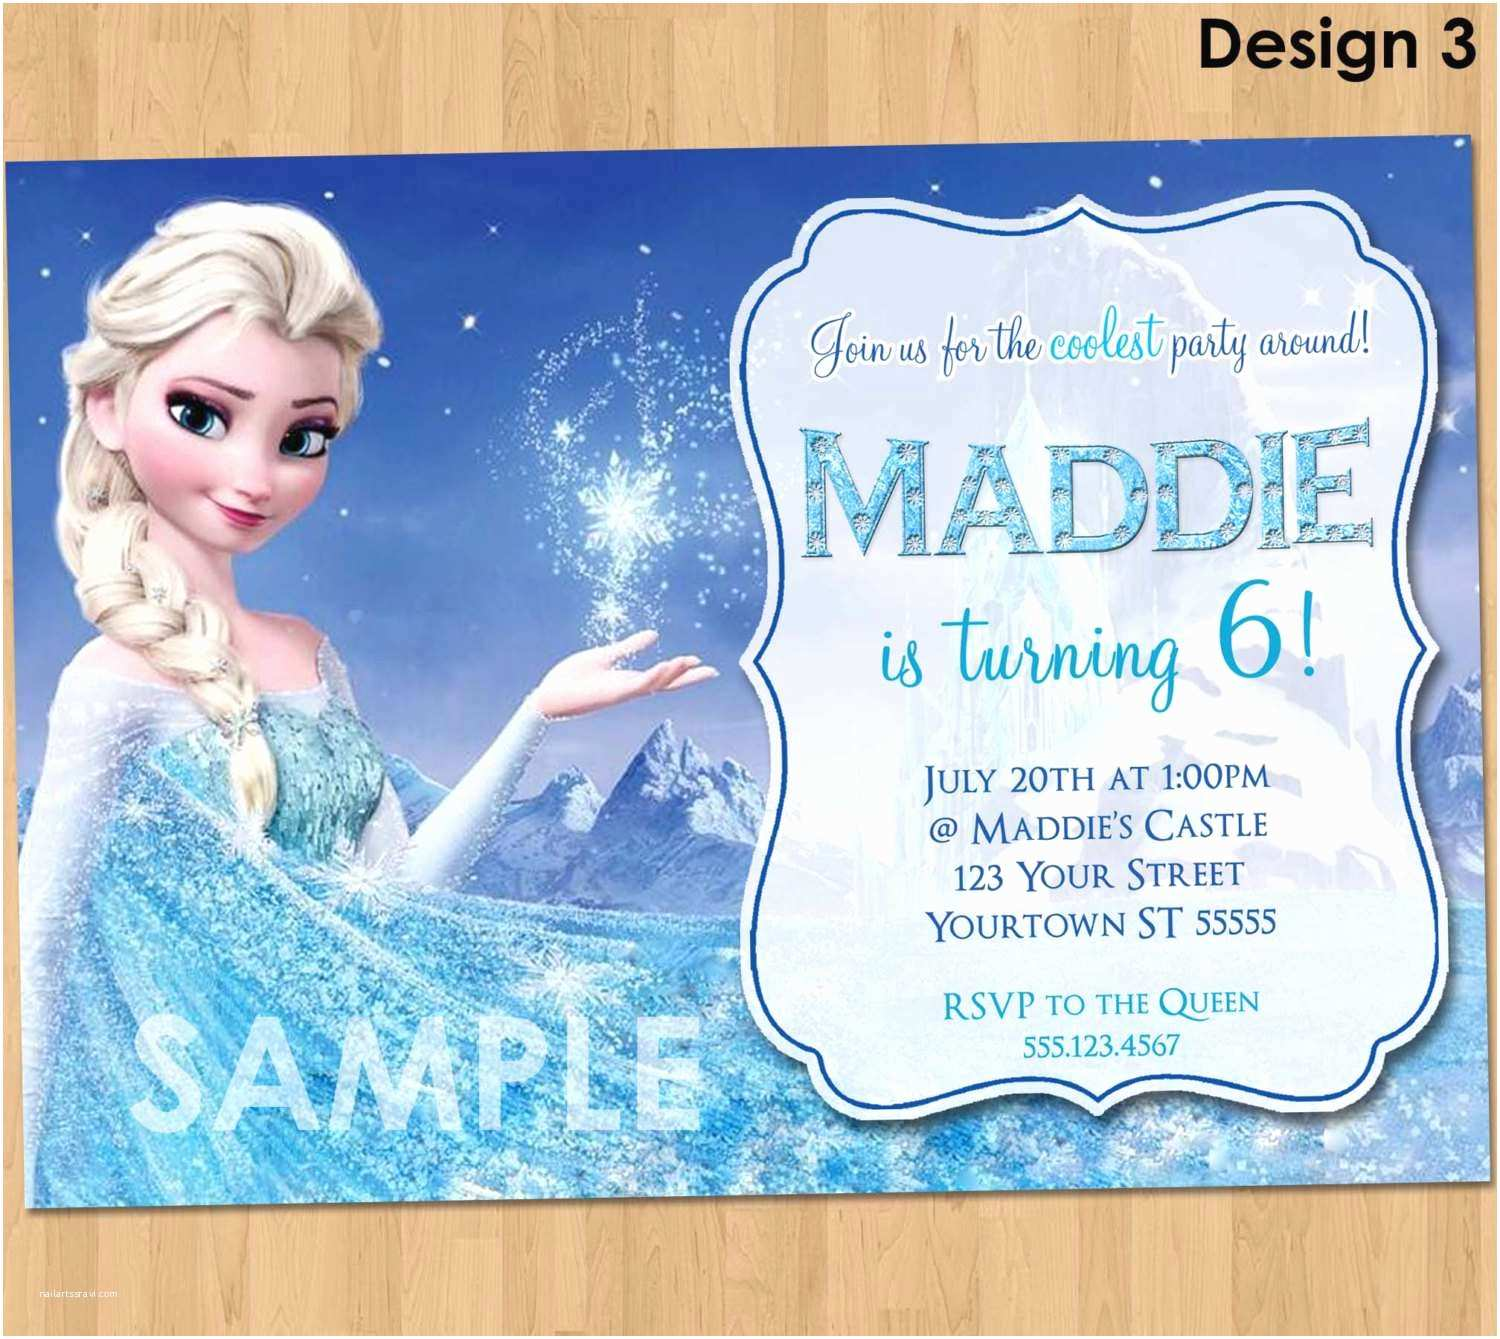 Walgreens Birthday Invitations How to Create Walgreens Party Invitations Designs Charming